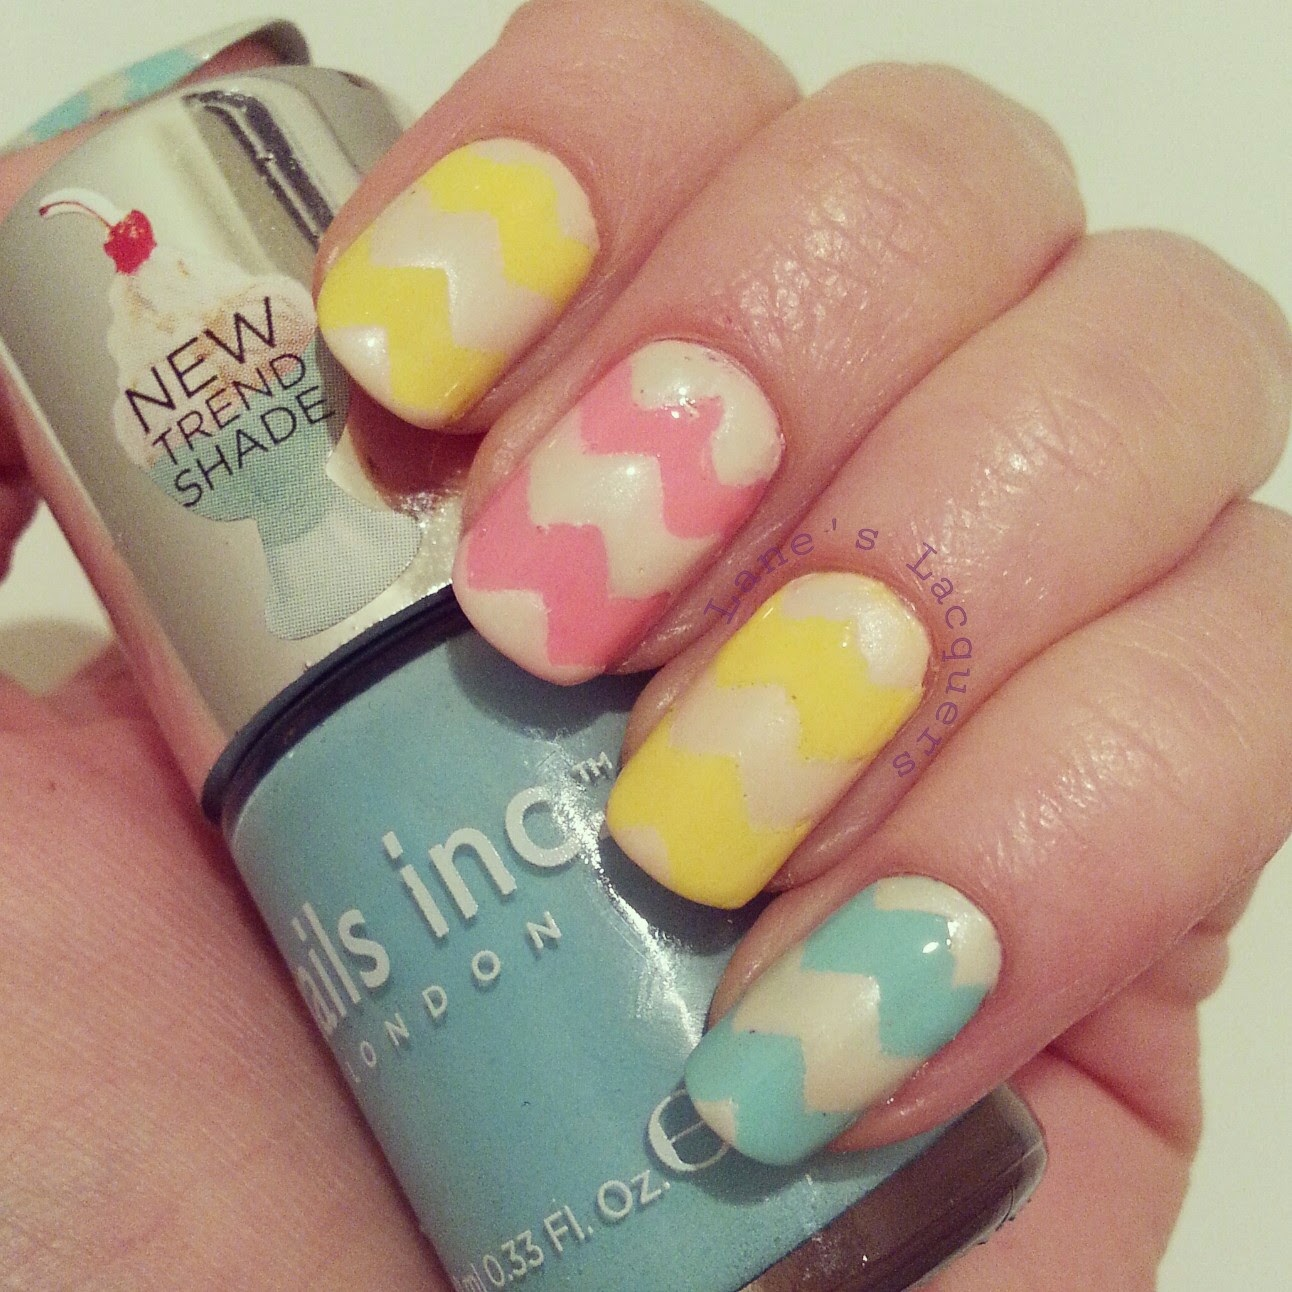 nails-inc-easter-pastel-nail-art